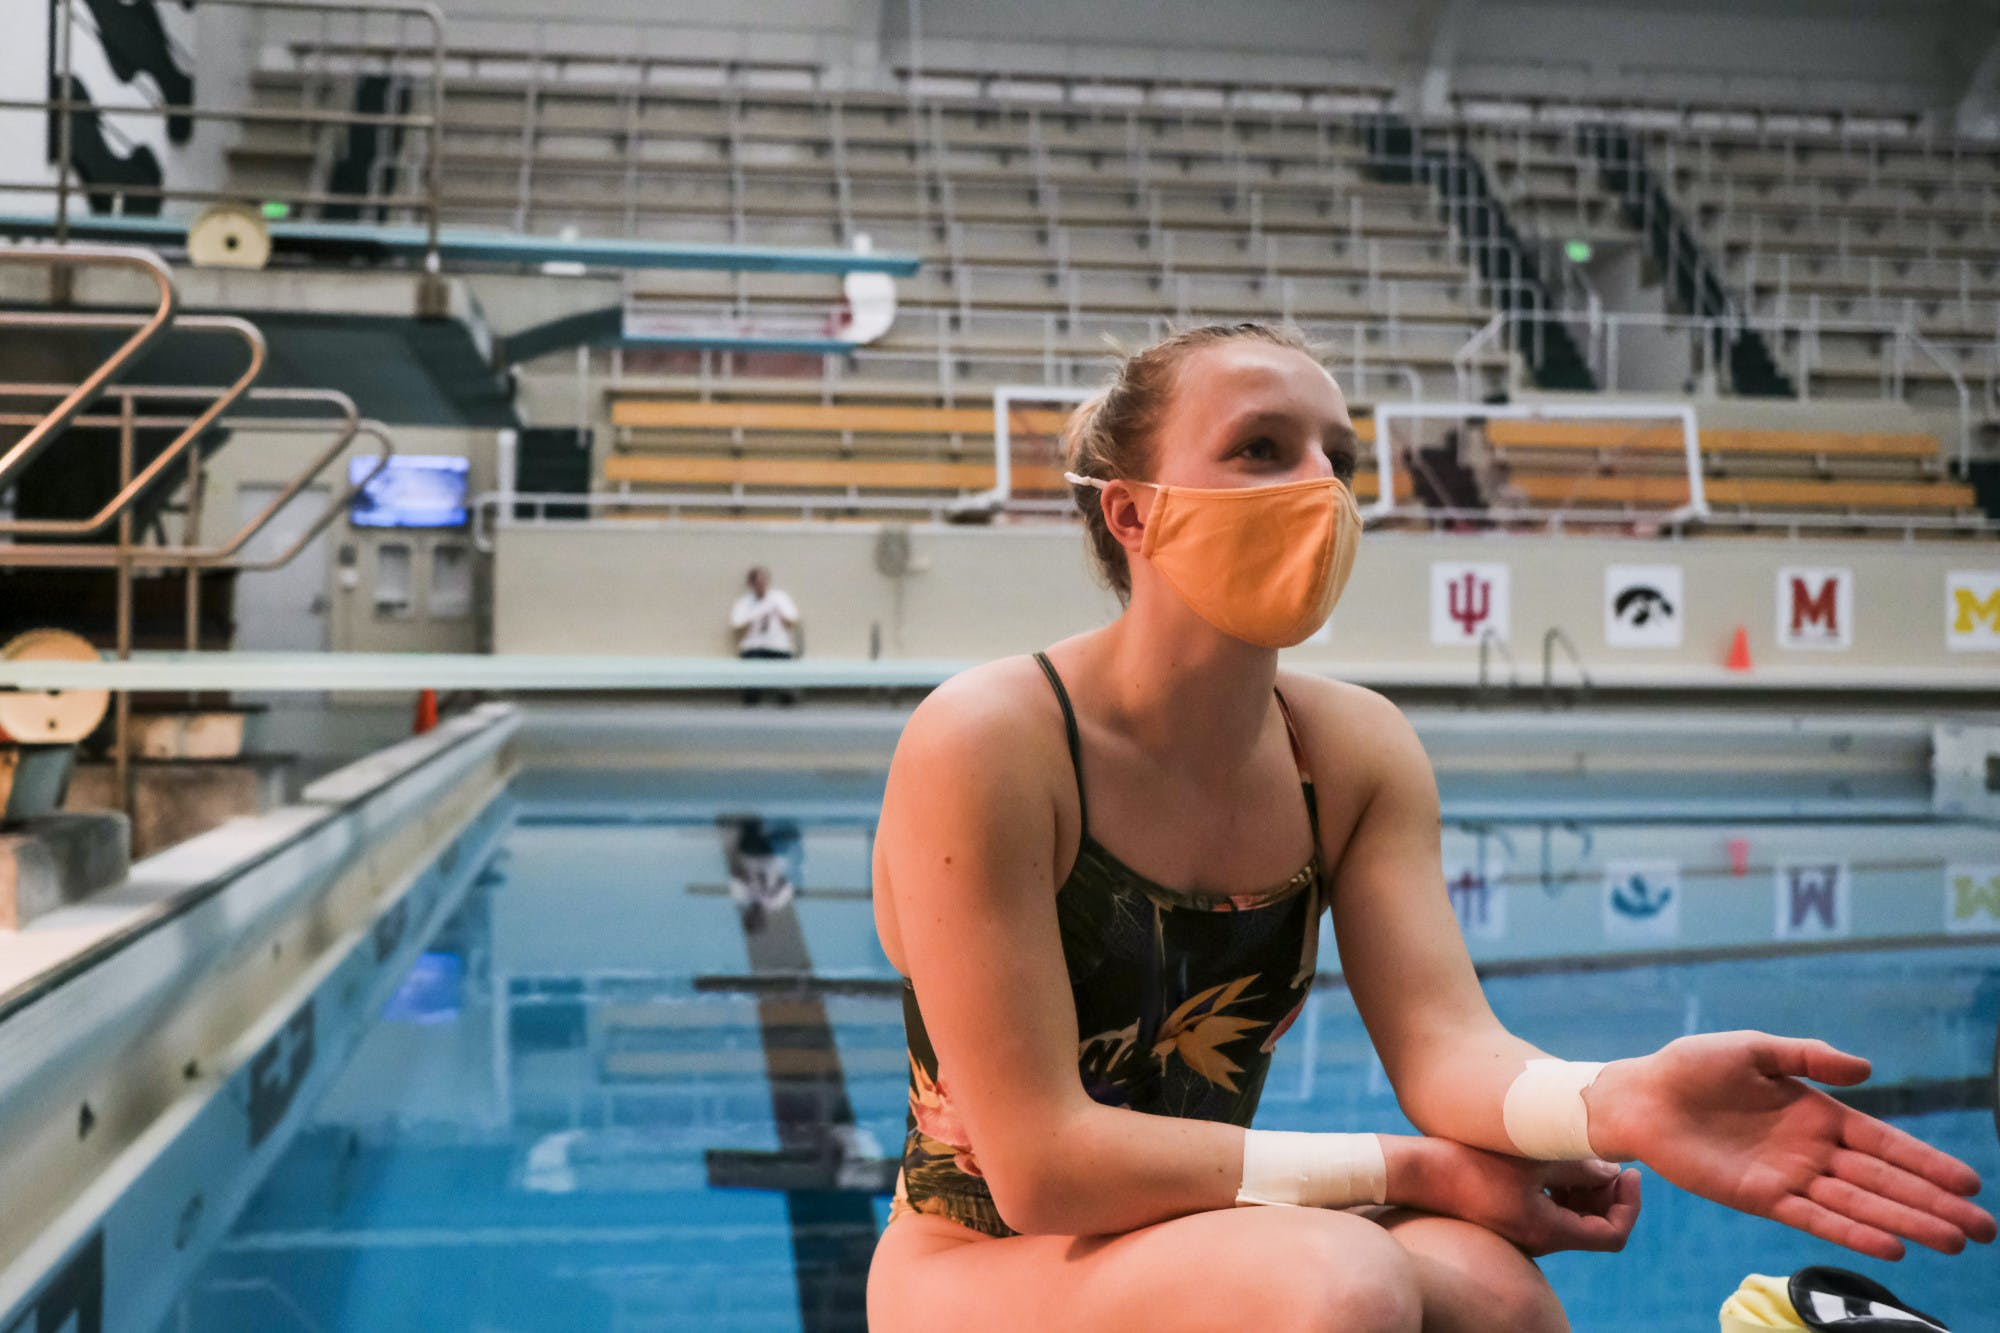 A person wearing a face mask and swimsuit sits in front of an empty pool with empty viewer stands.